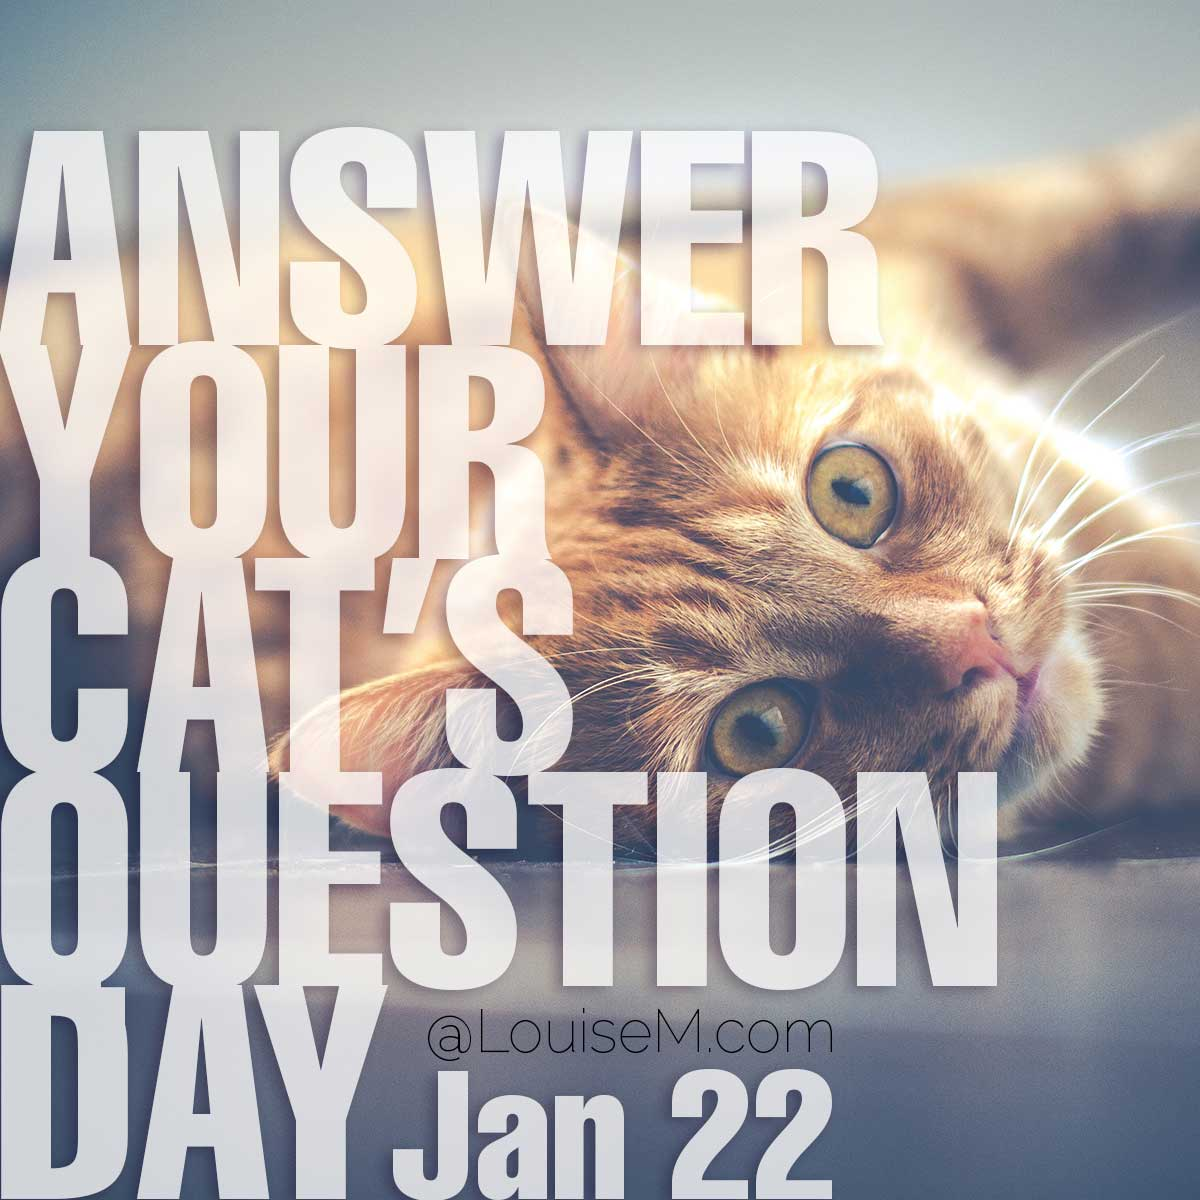 National Answer Your Cat's Questions Day on cute cat photo.